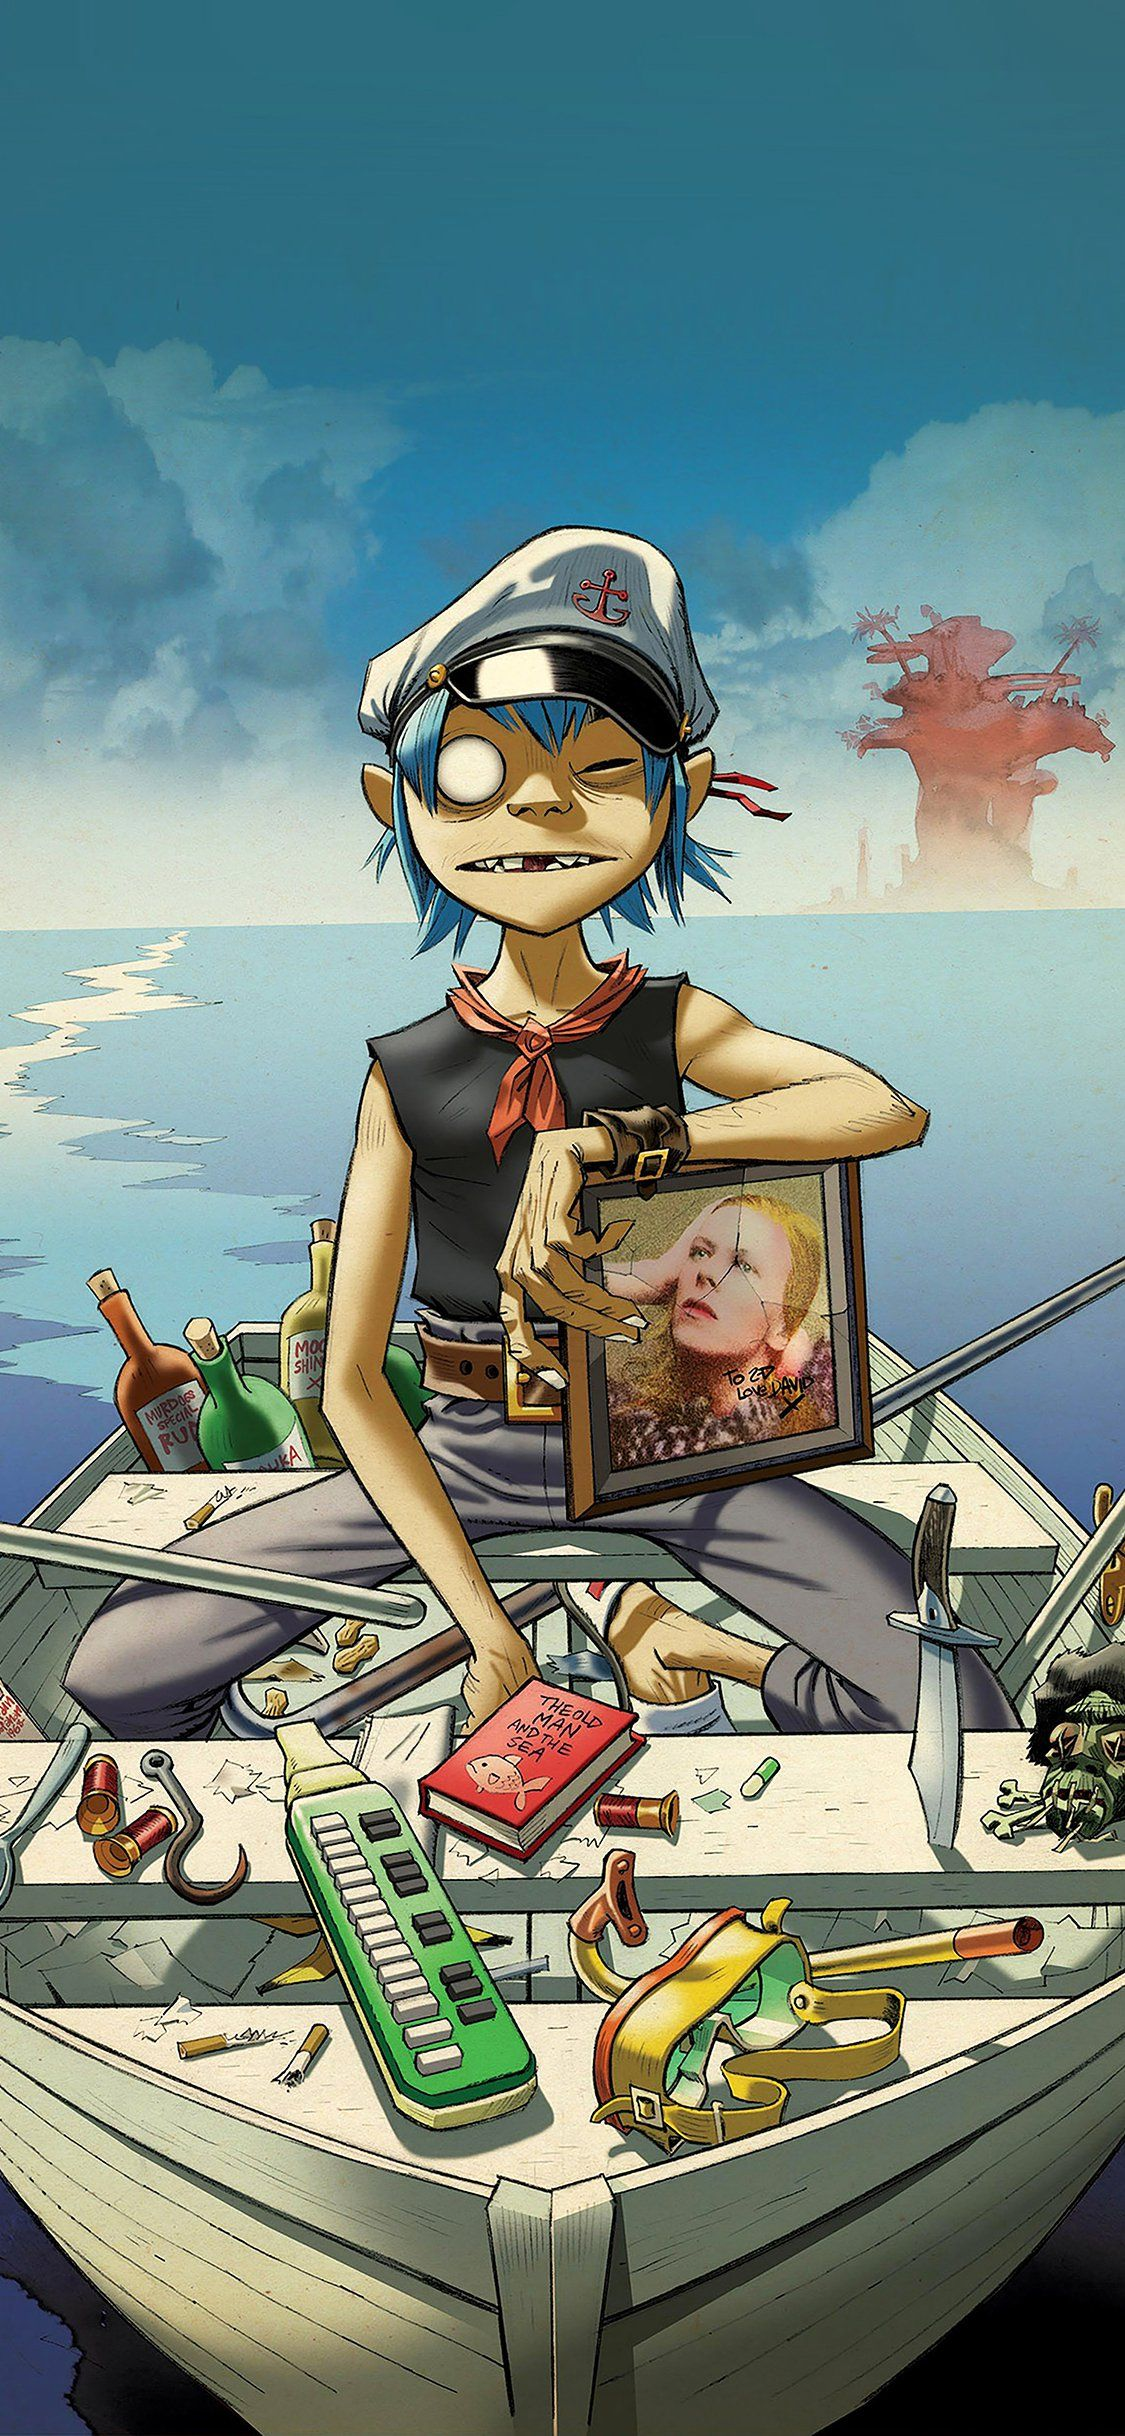 Gorillaz boat music iPhone X Wallpapers in 2020 Gorillaz